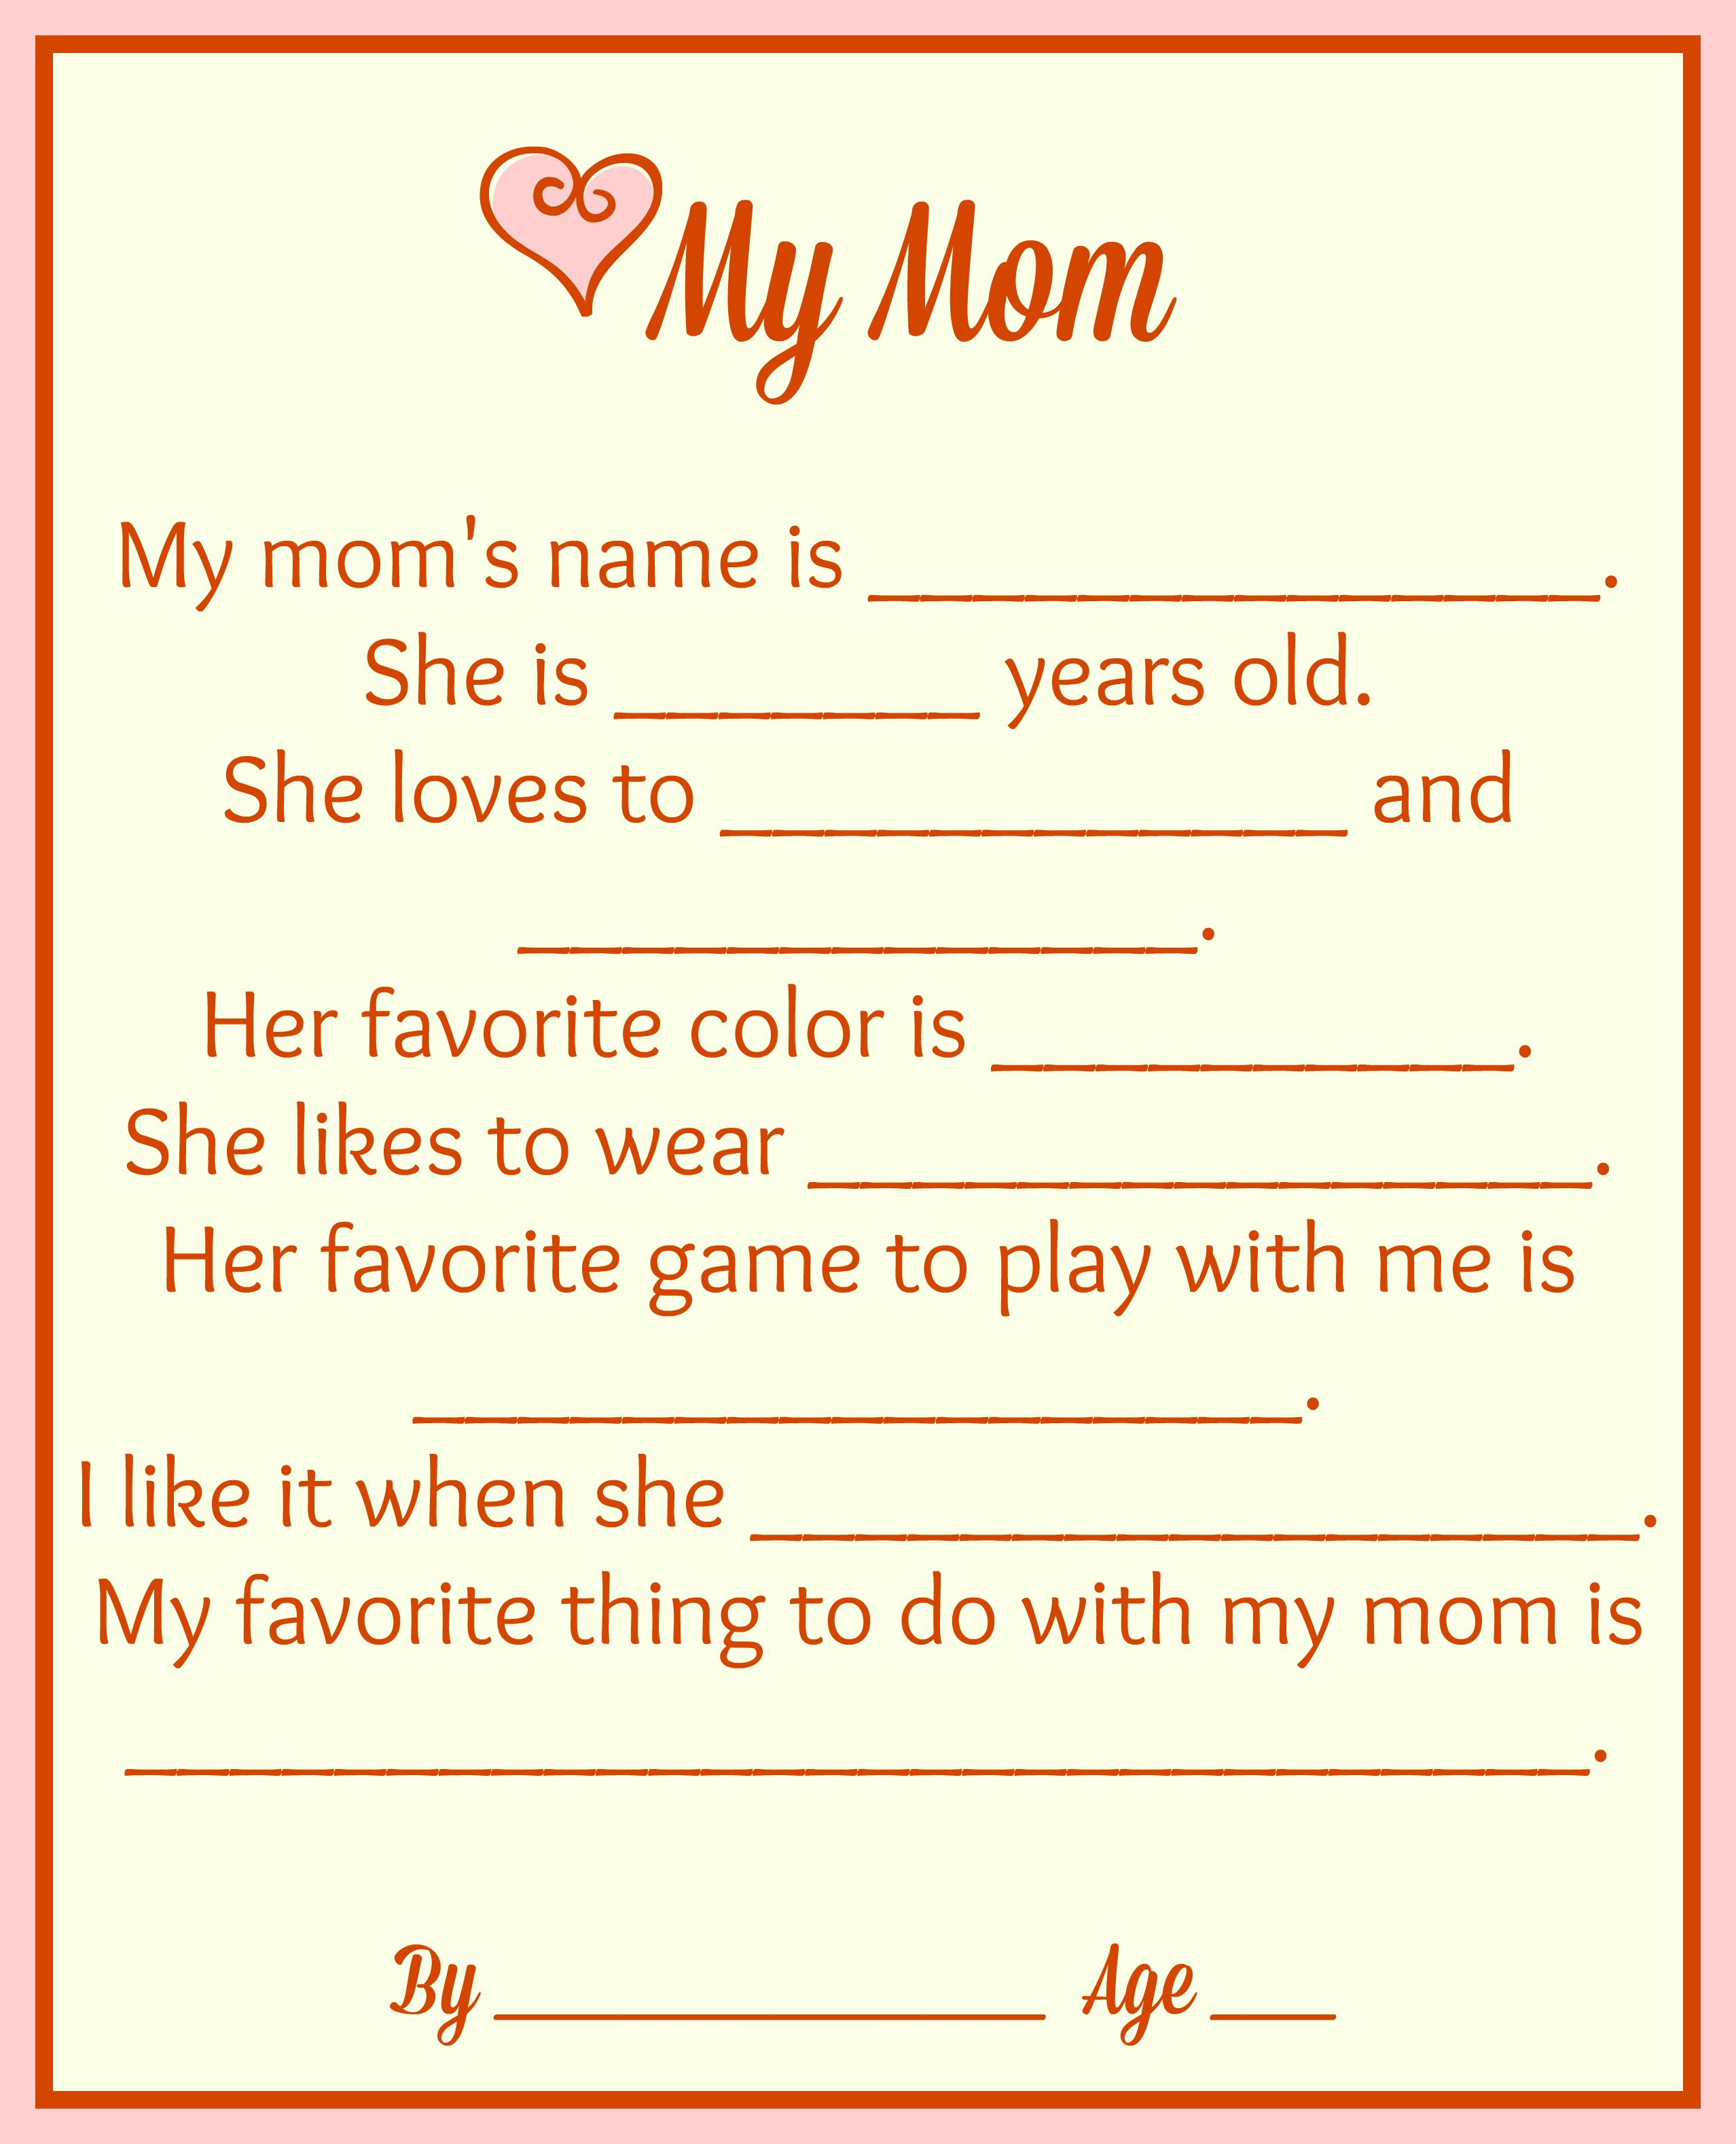 Free Mother's Day Printables {Make It For Mom} - | Mothers' Day Tea - Free Printable Mother's Day Games